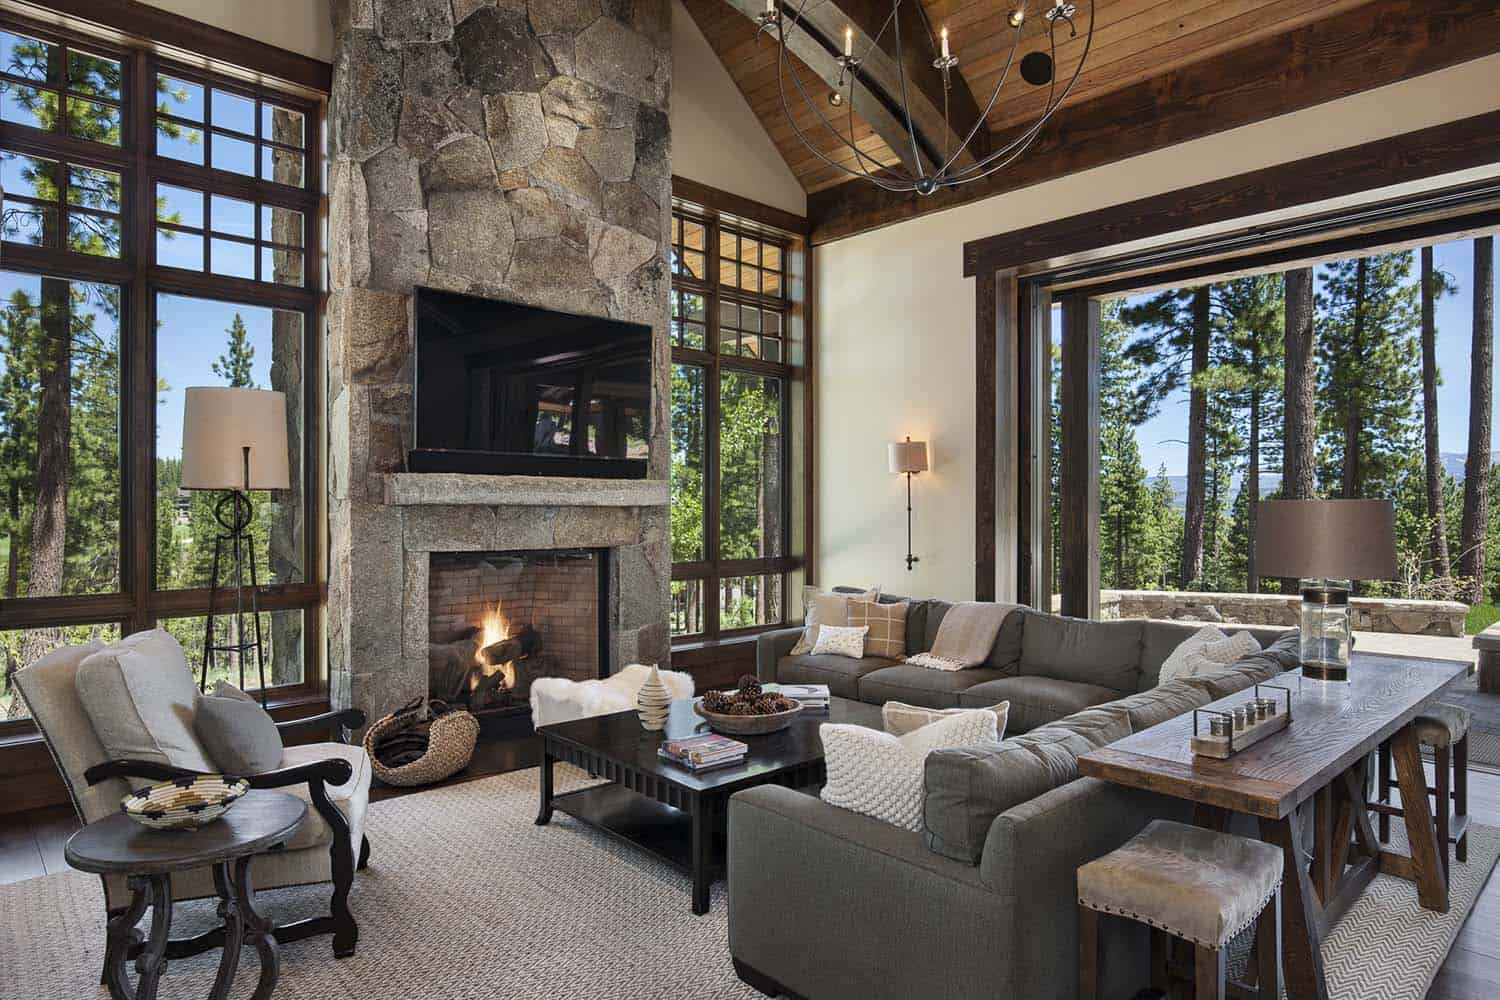 Rustic Mountain Retreat-Kelly Stone Architects-10-1 Kindesign